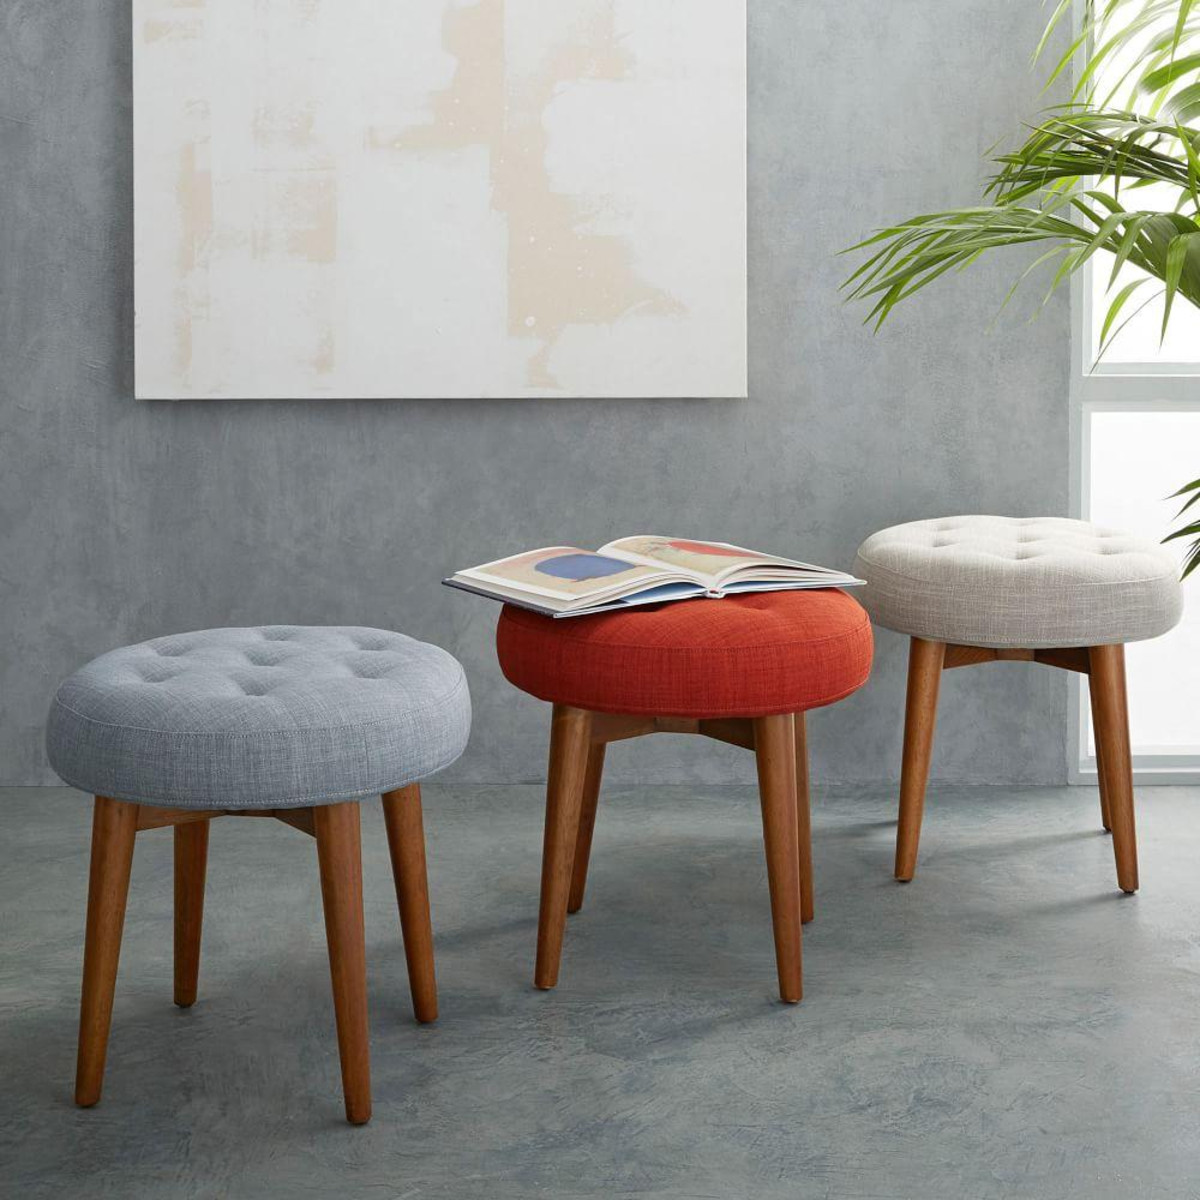 West Elm Ottoman for Modern Coffee Table Design: Decorative Foot Stool | West Elm Ottoman | Furniture Footstools